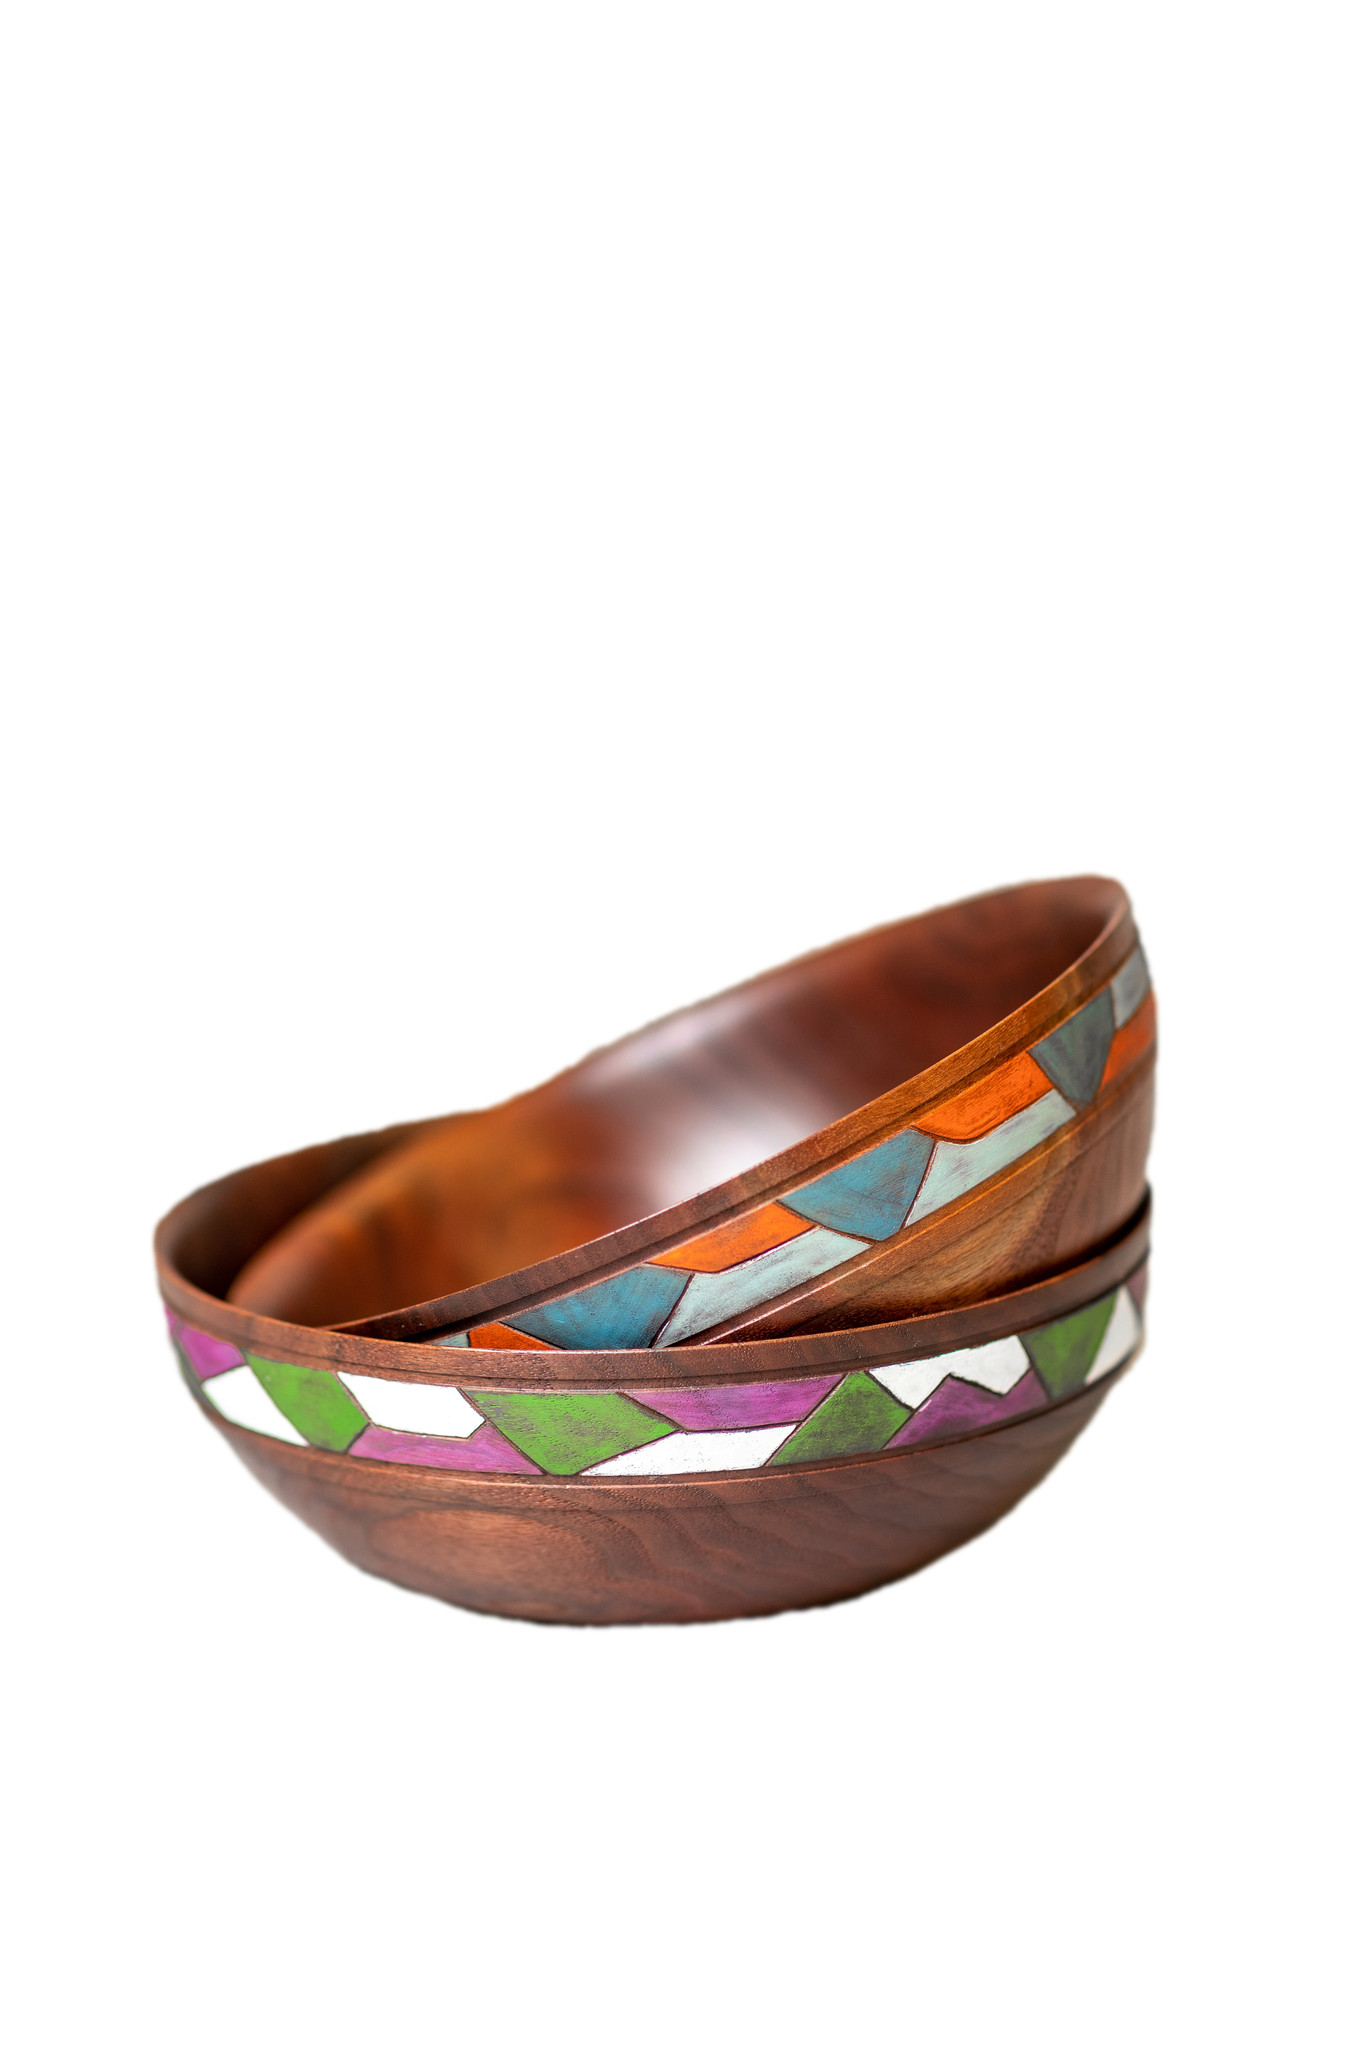 Wooden Bowl-1